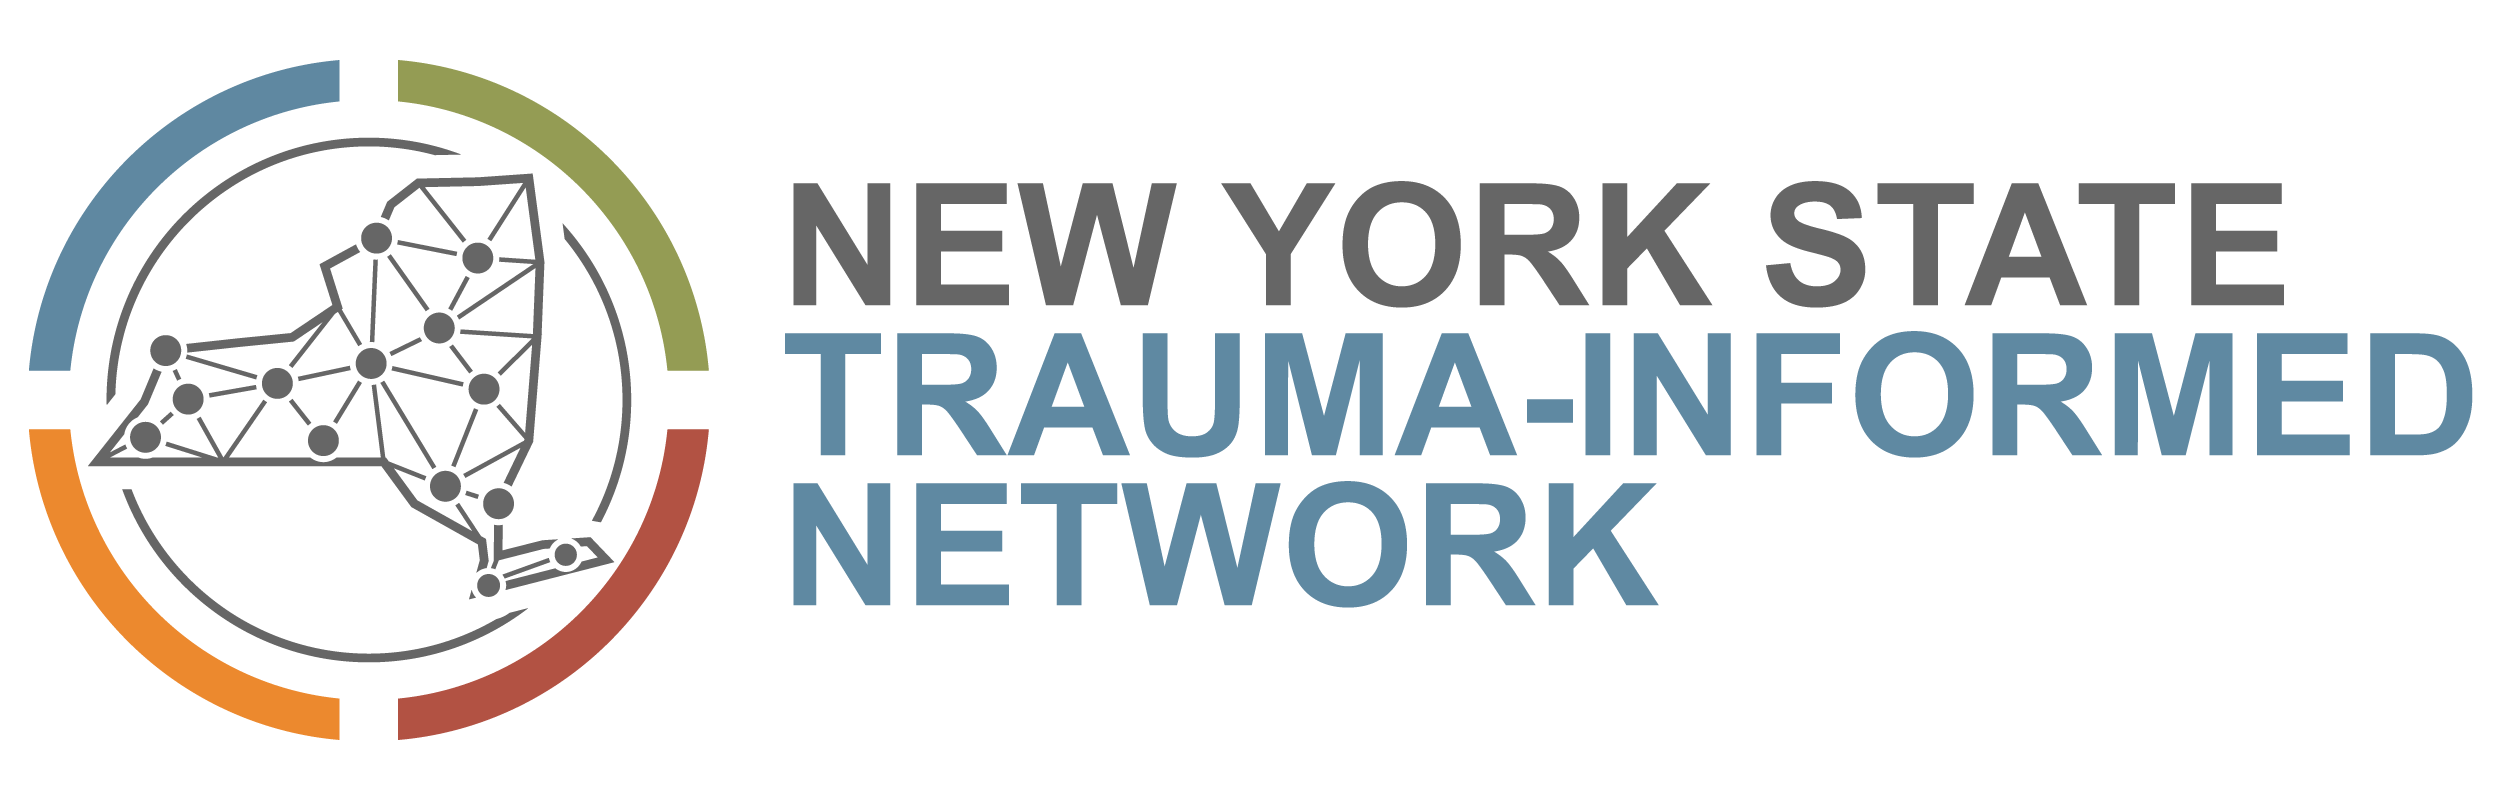 NYS Trauma Informed Network